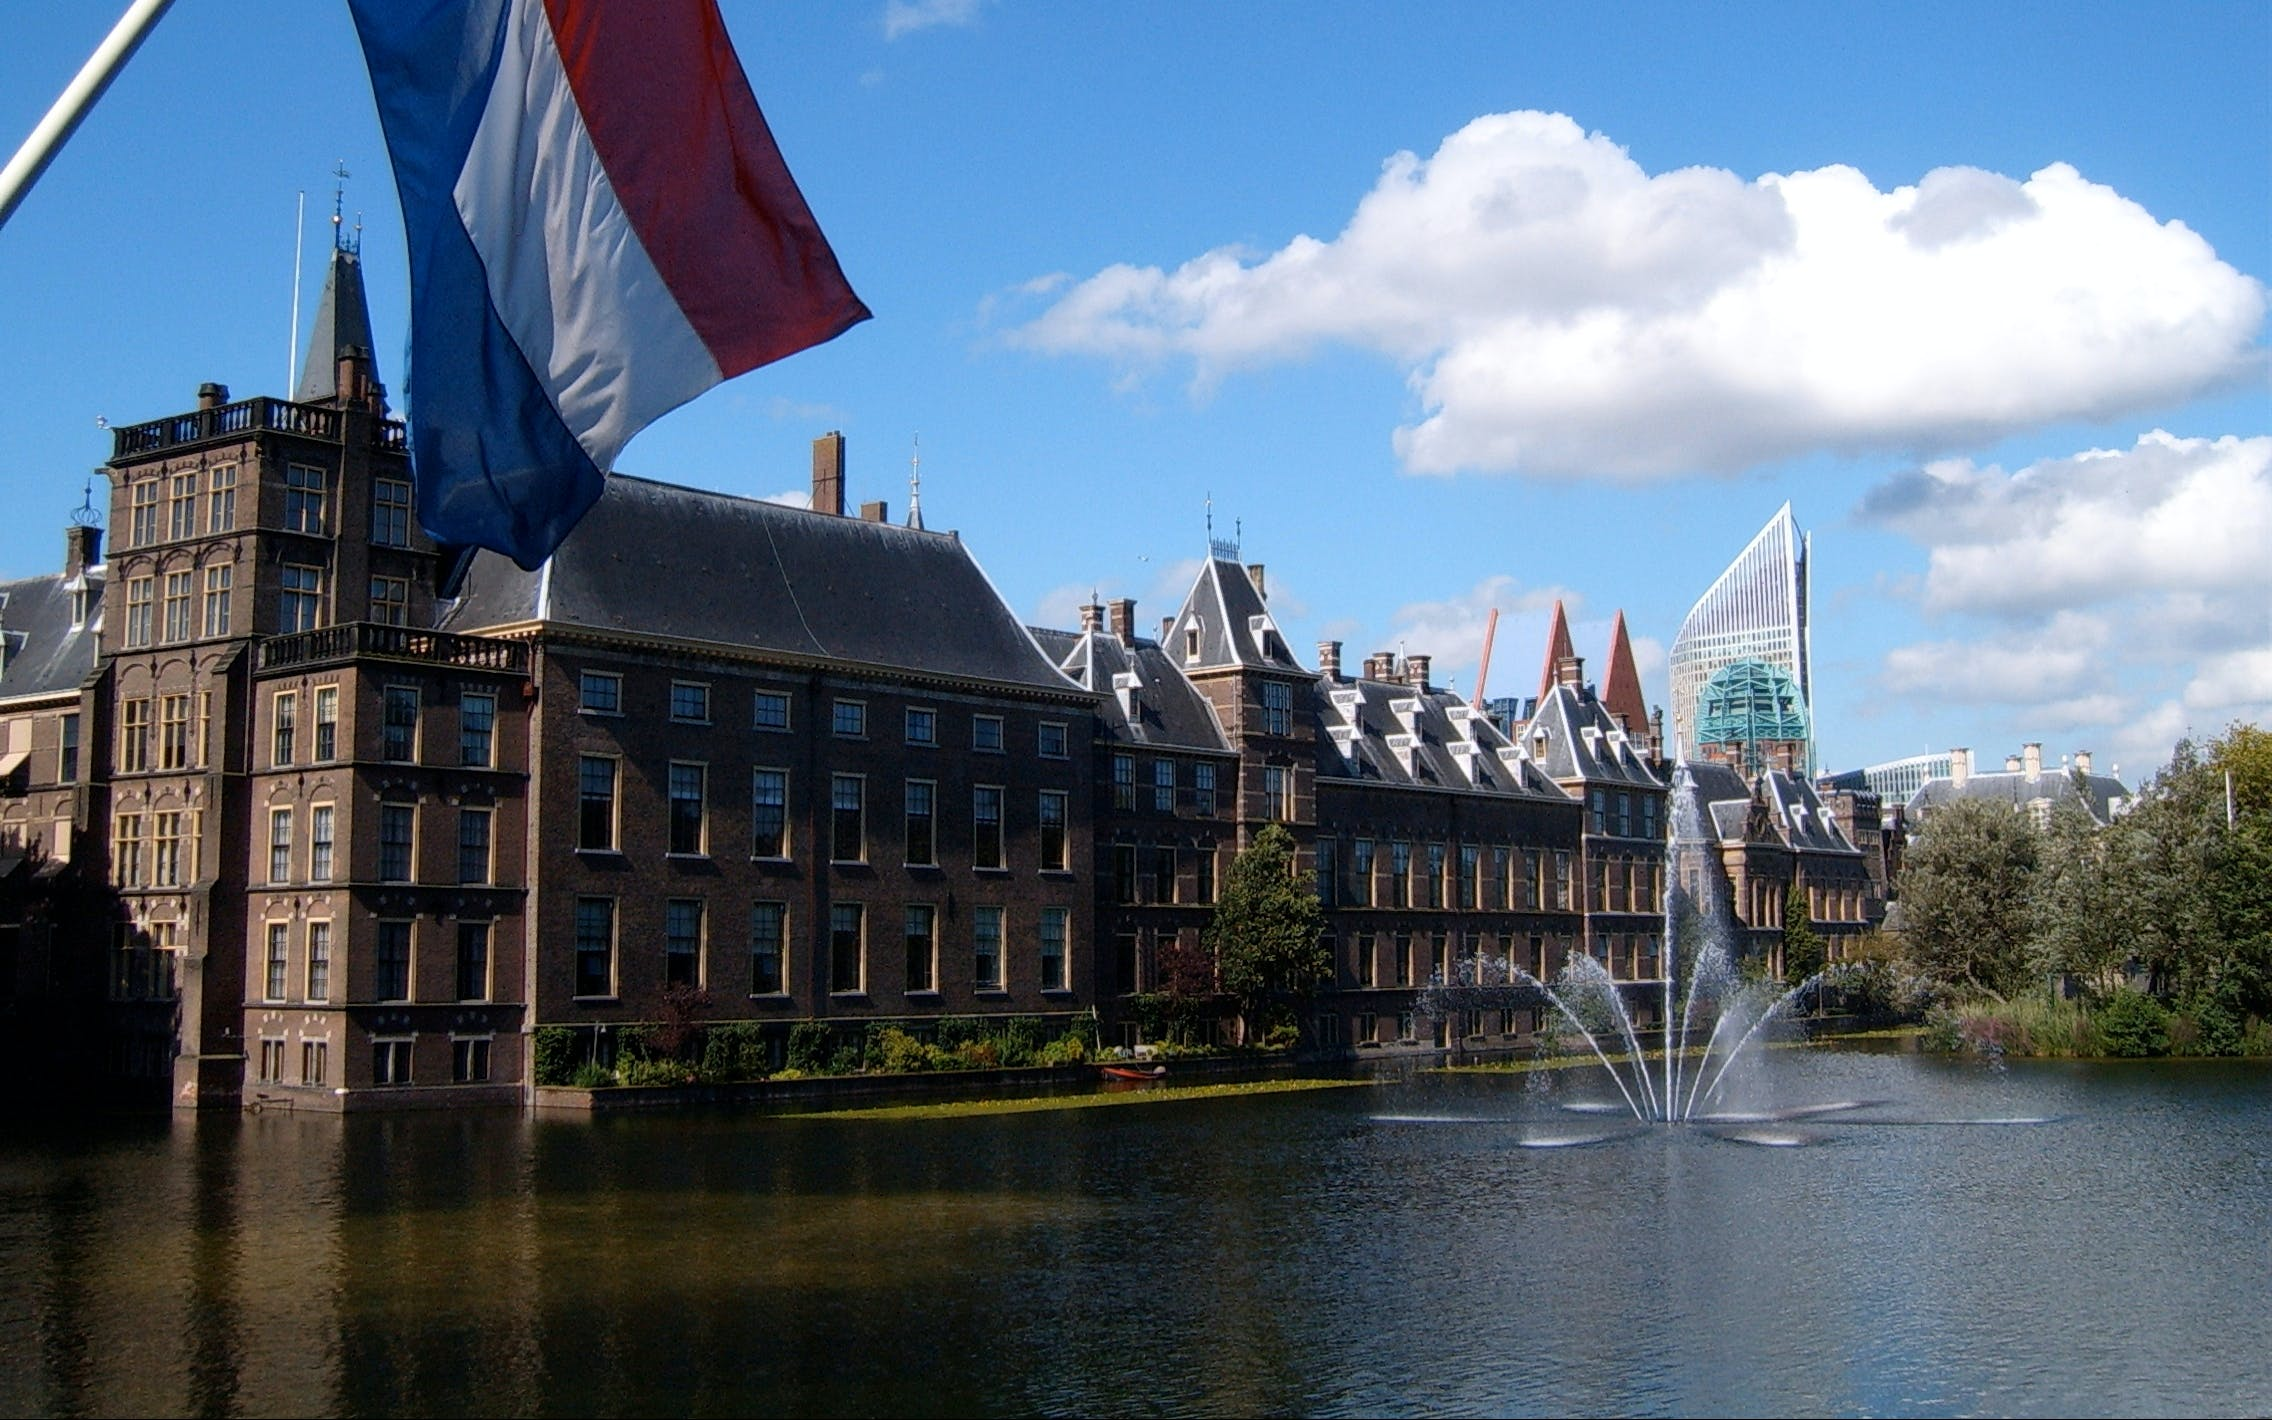 Small Group Tour: Full Day trip to Rotterdam, Delft and the Hague from Amsterdam